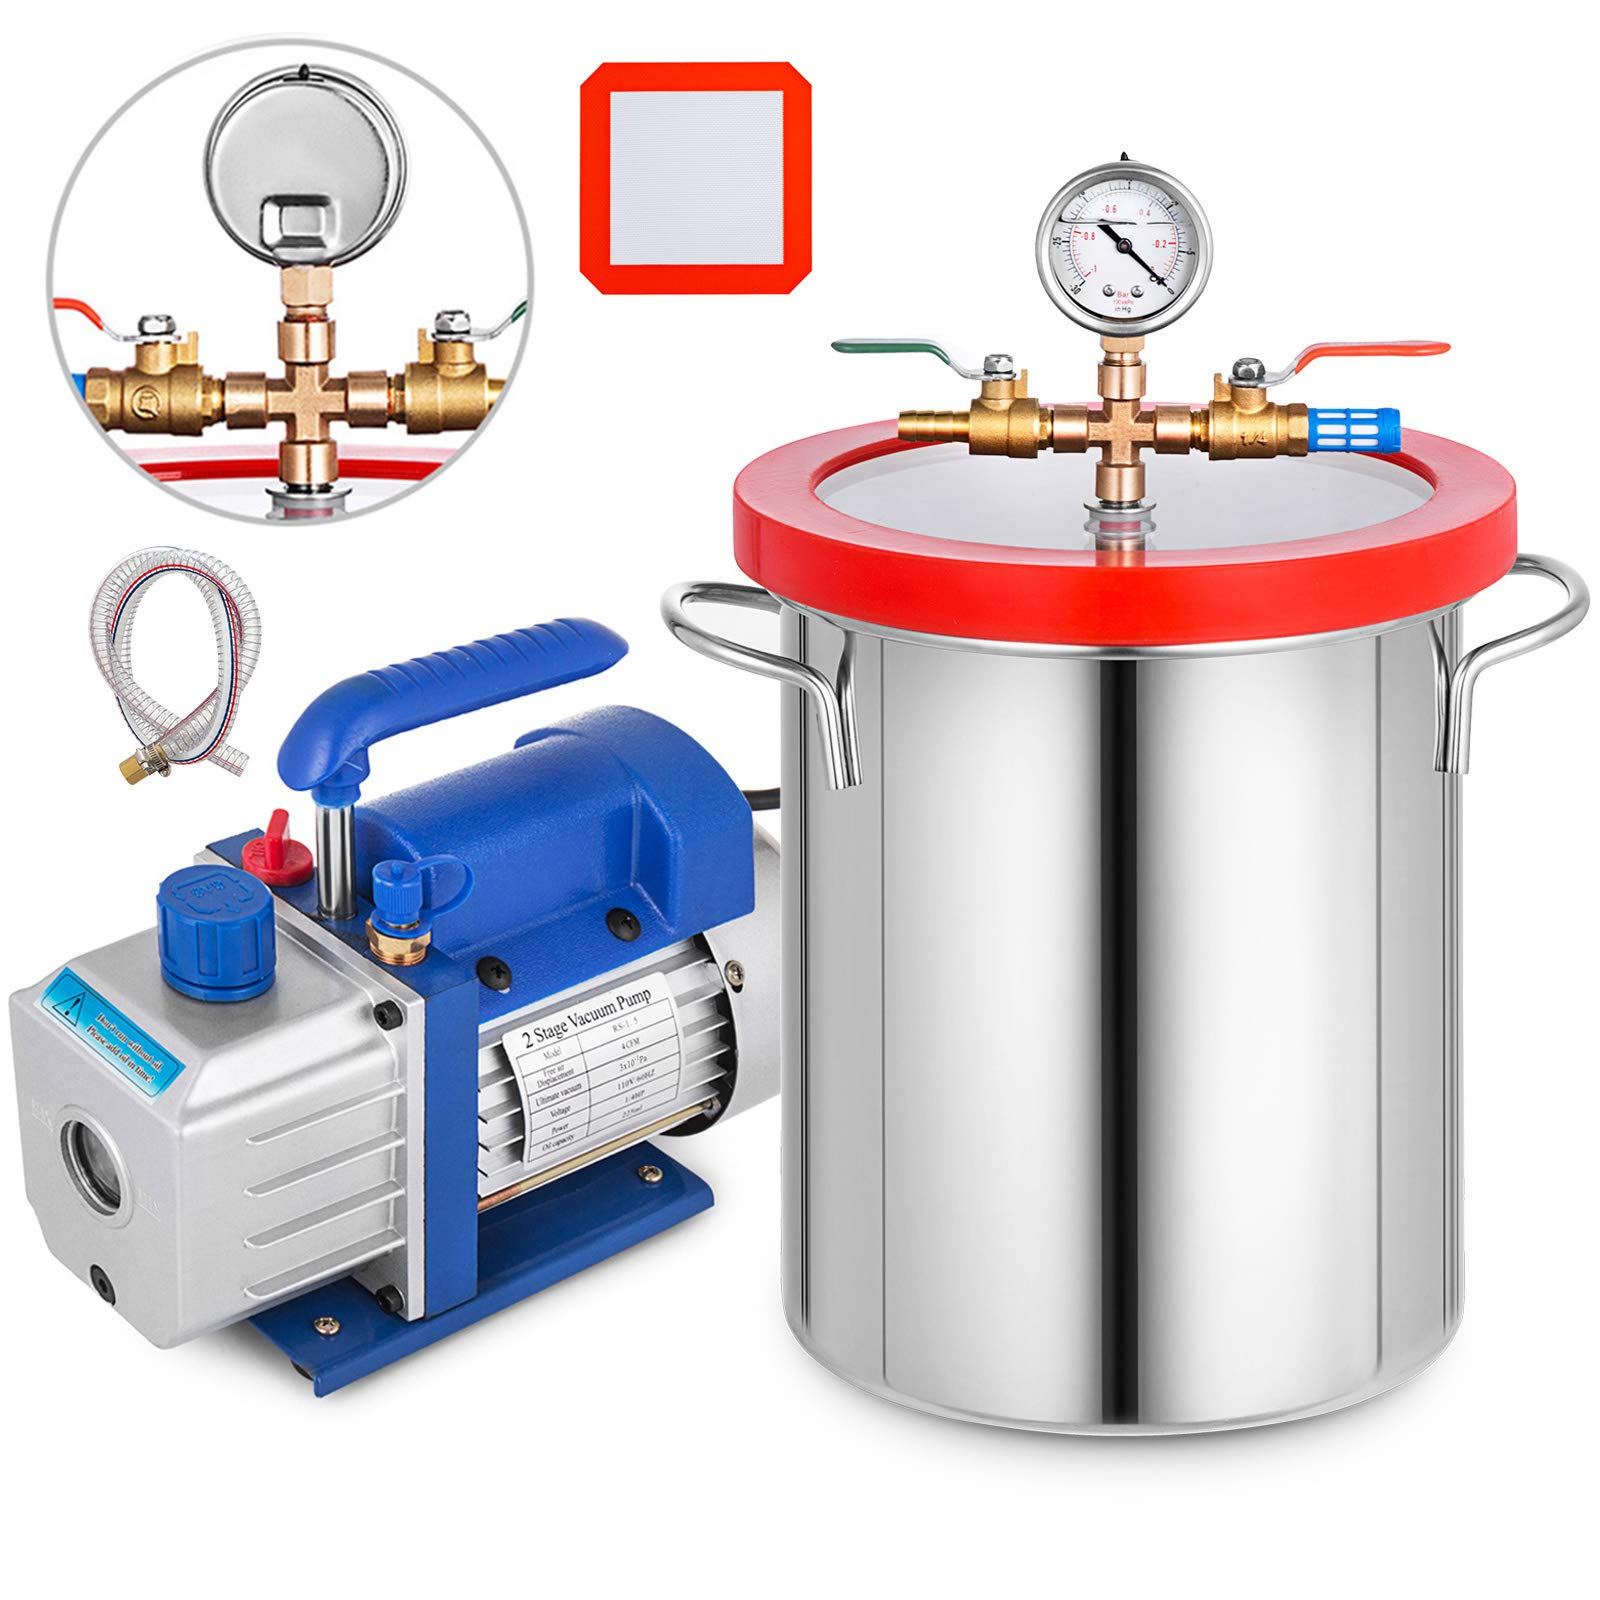 Bestauto 3 Gallon Vacuum Chamber Kit Stainless Steel Degassing Chamber 12L Vacuum Degassing Chmaber Kit with 4CFM Two Stage Vacuum Pump Kit (4CFM Vacuum Pump 2 Stage + 3 Gallon Vacuum Chamber) by Best In Auto